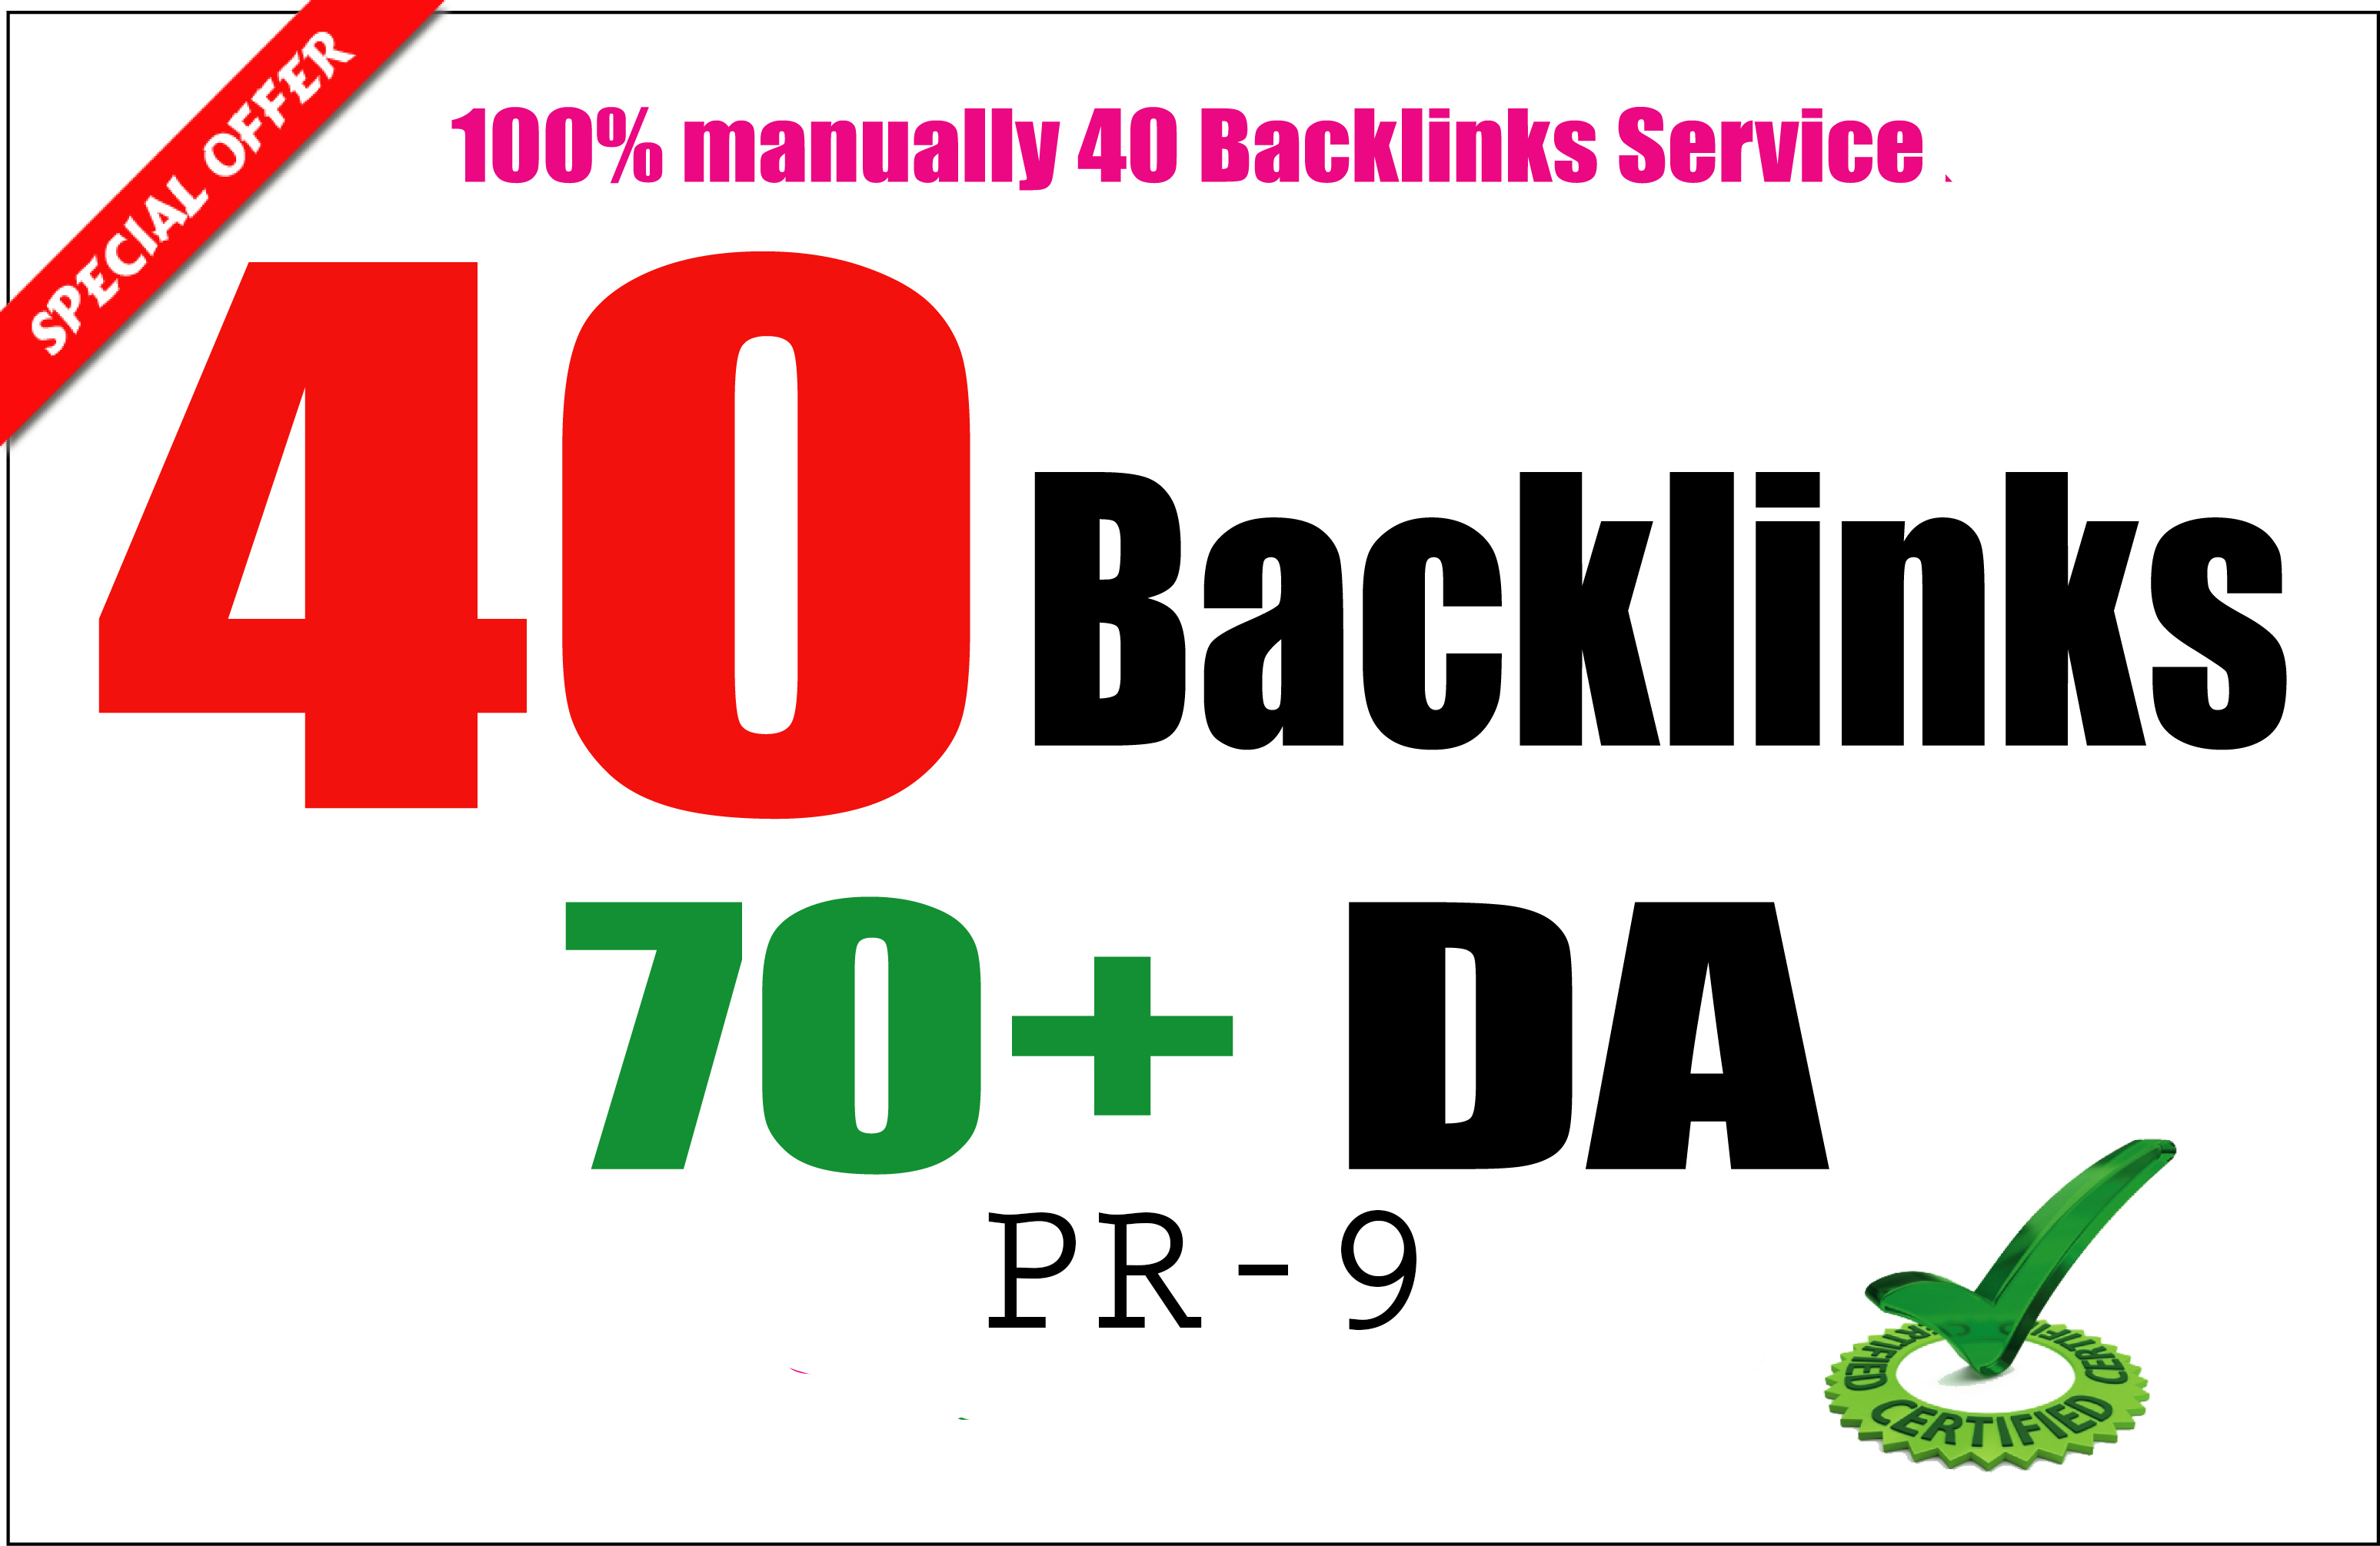 40 MANUAL PR9 - DA Domain Authority 70+ Limited Offer